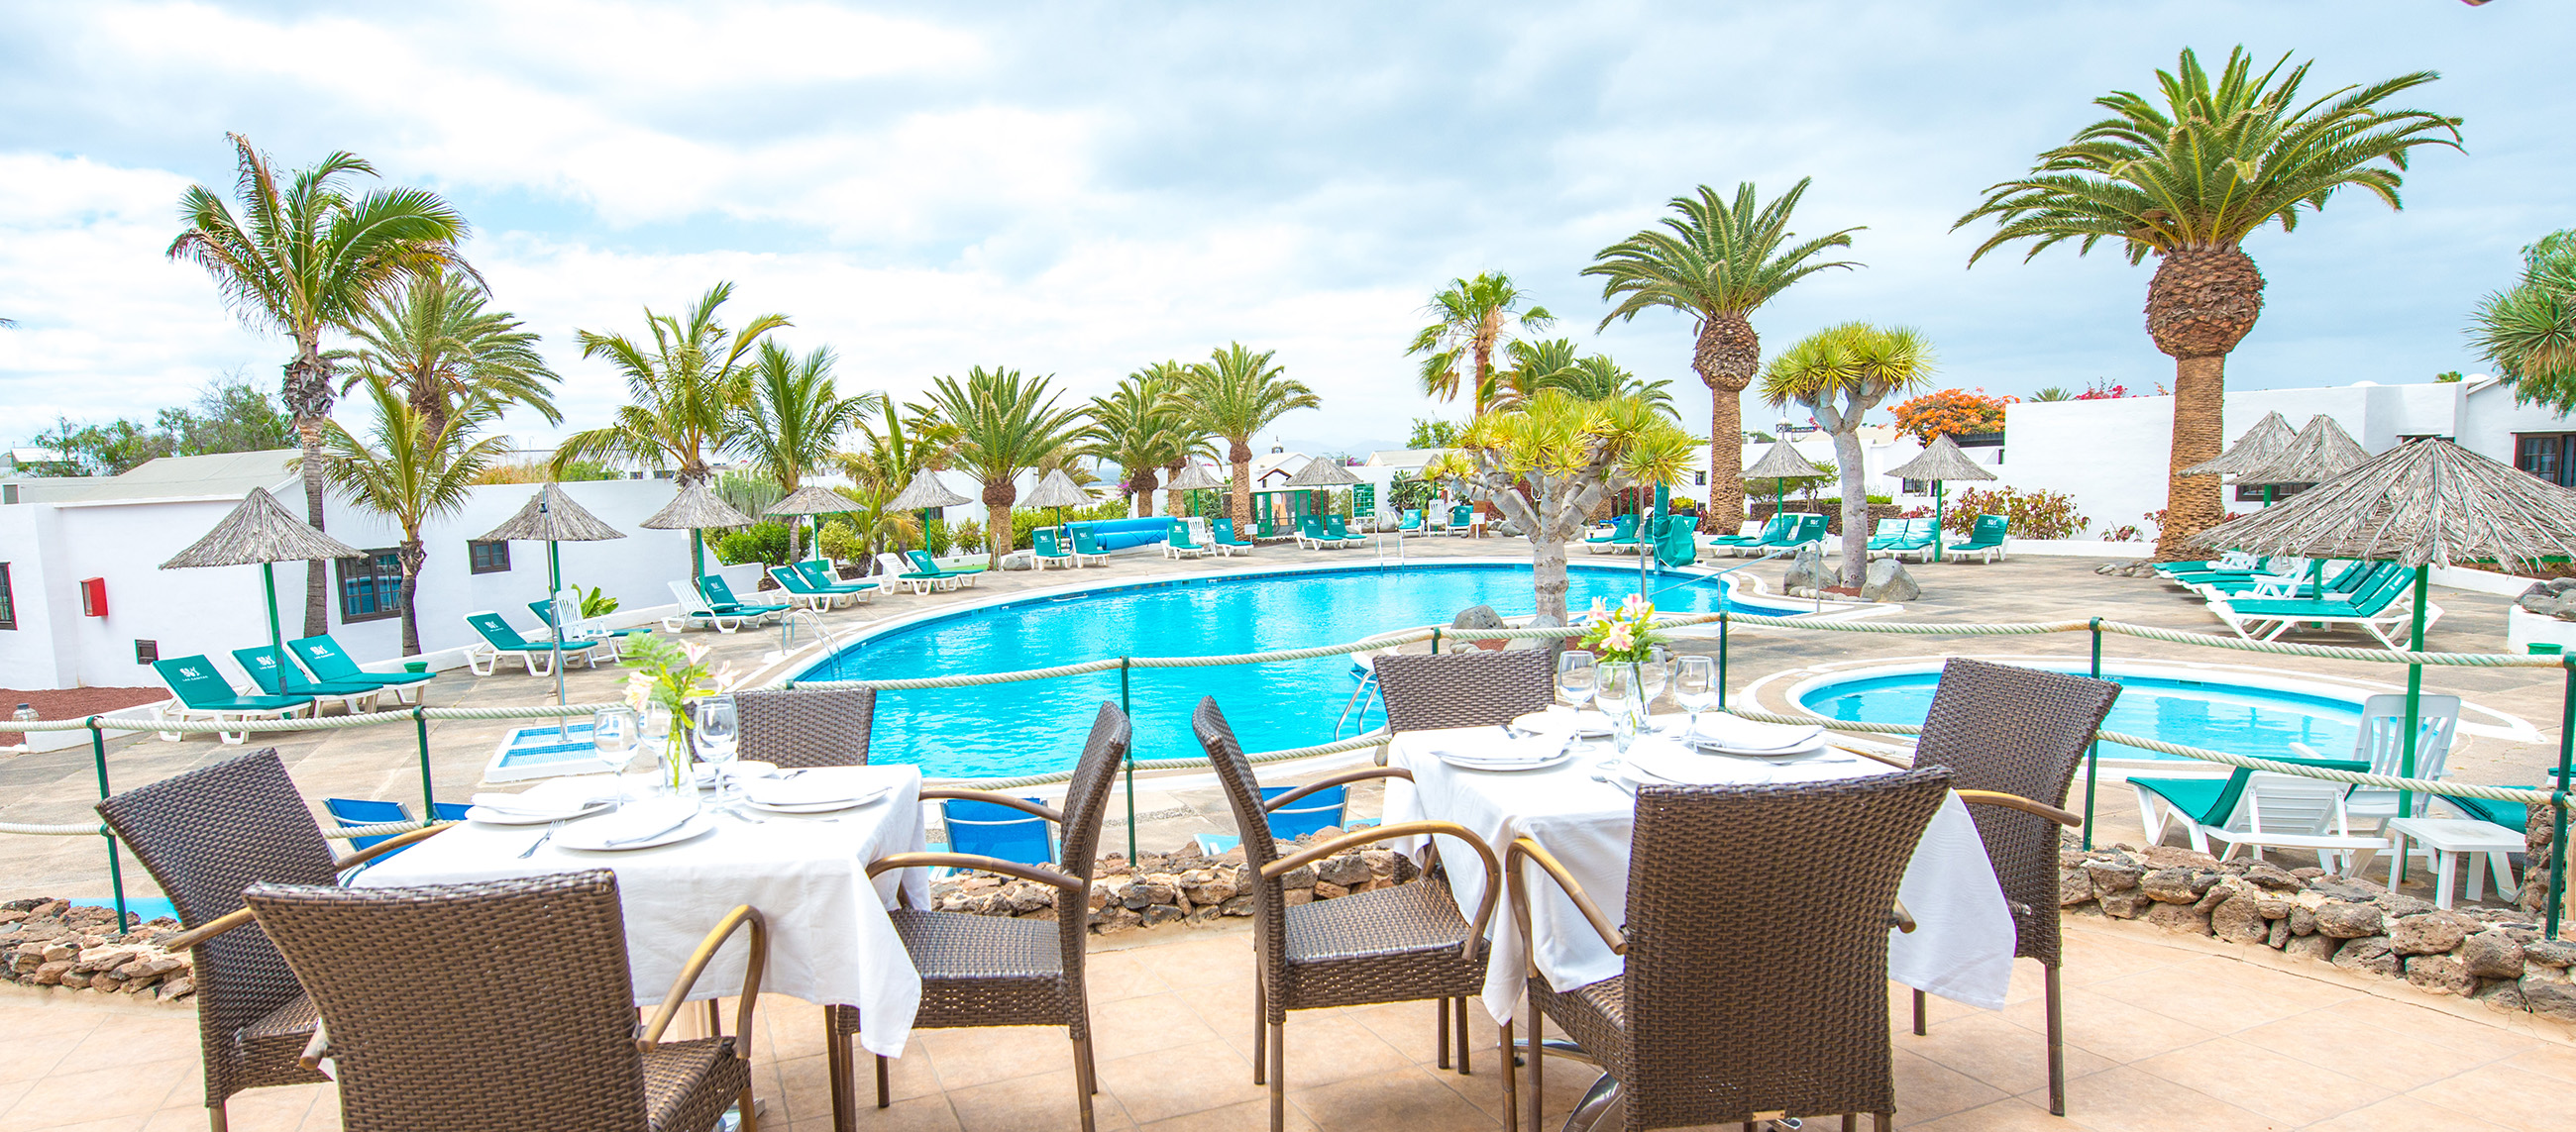 Las Casitas Pool Restaurant 2